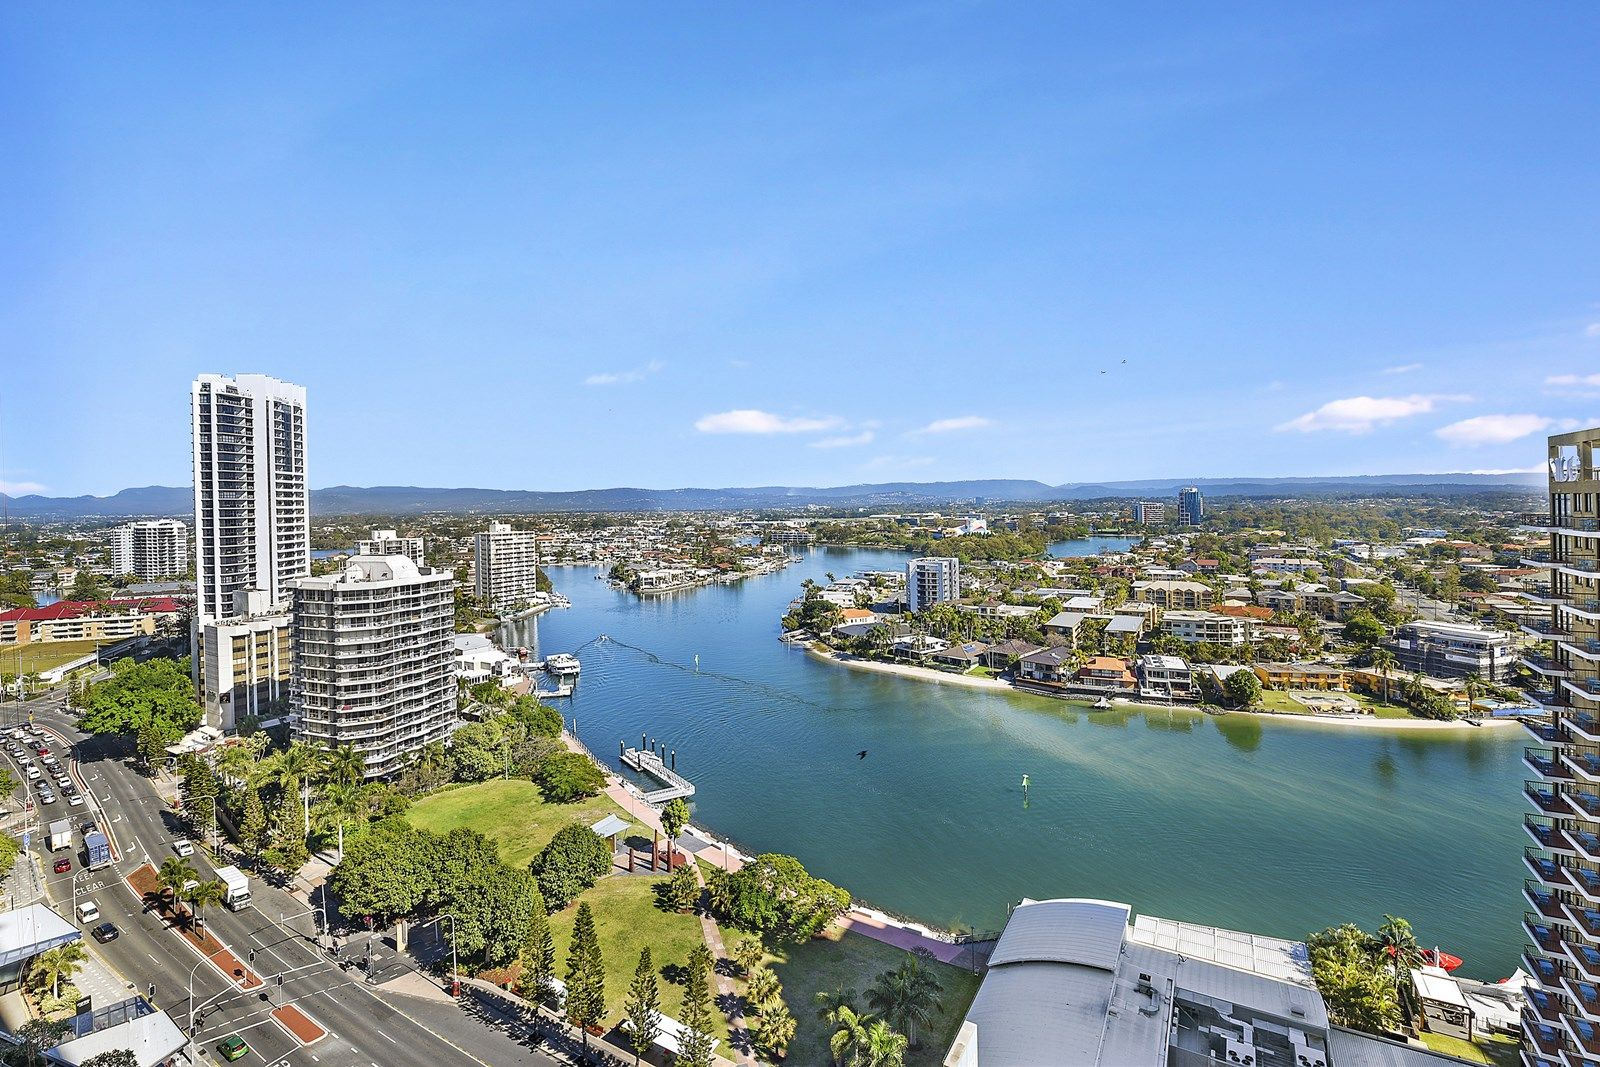 2 Bedroom Apartment For Sale At 3177 23 Ferny Avenue Surfers Paradise Qld 4217 View Property Photos Floor Pl Surfers Paradise Gold Coast Apartments For Sale